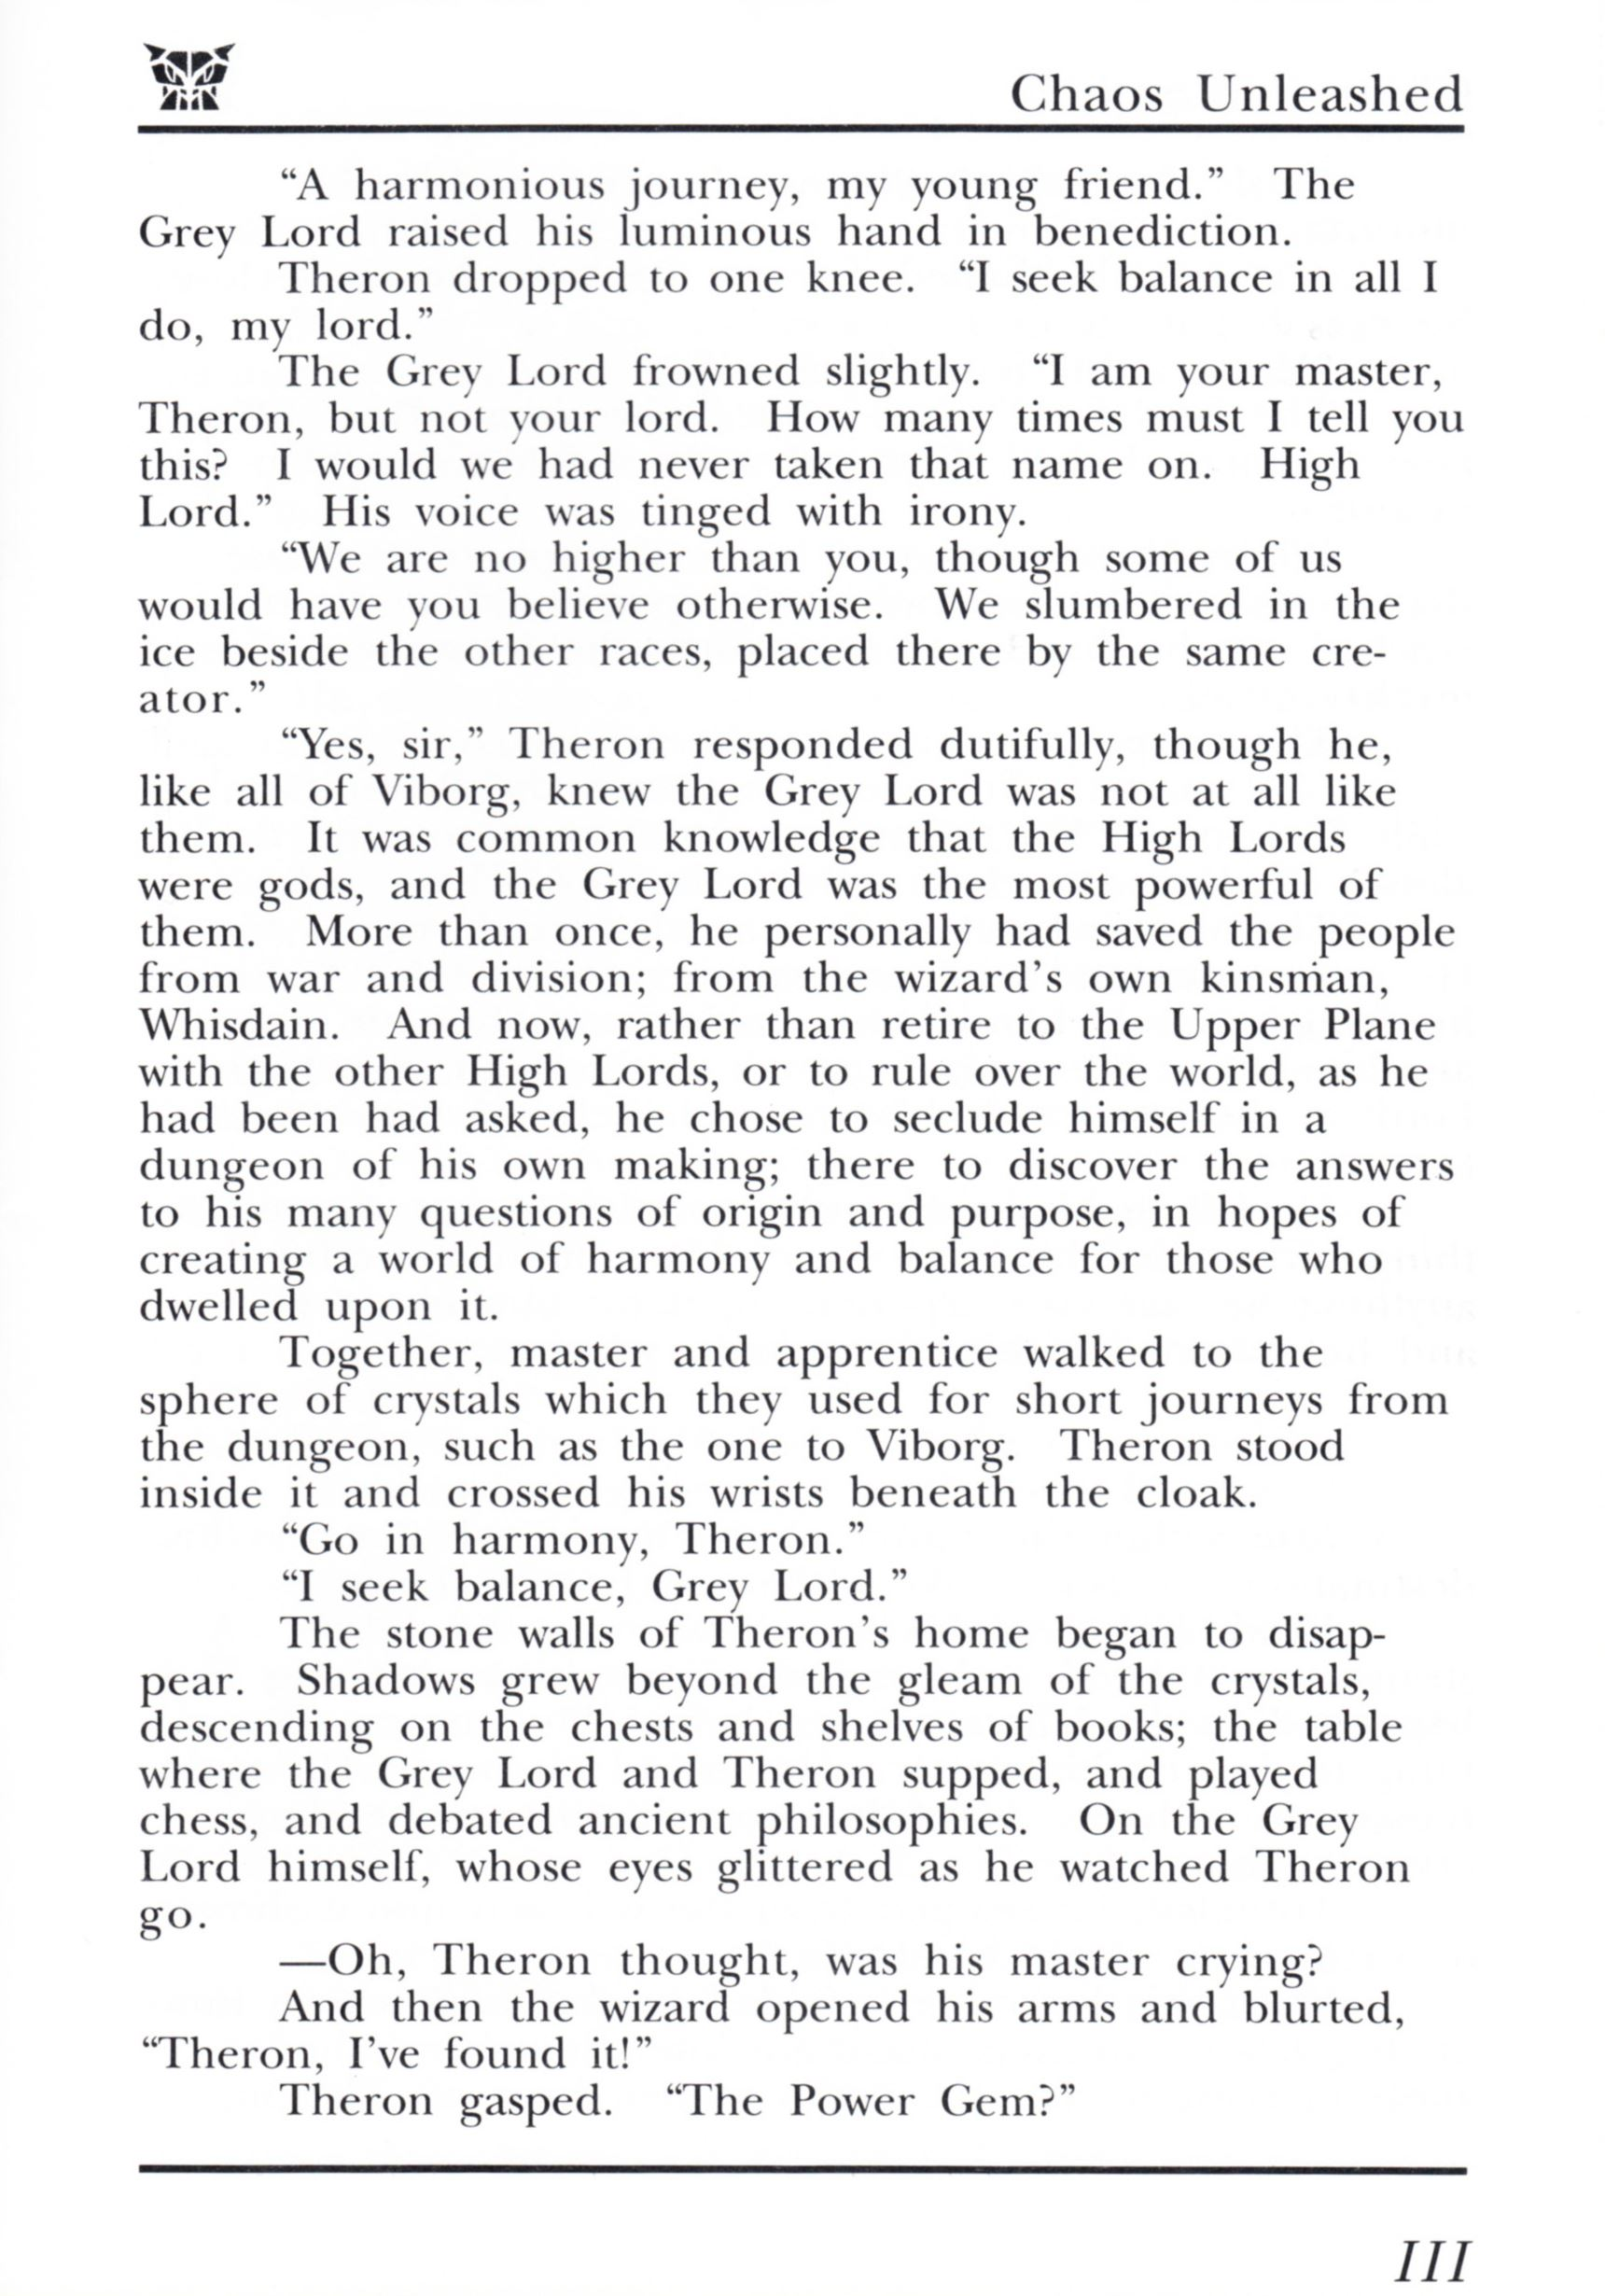 Game - Dungeon Master - UK - PC - Psygnosis - Manual - Page 007 - Scan